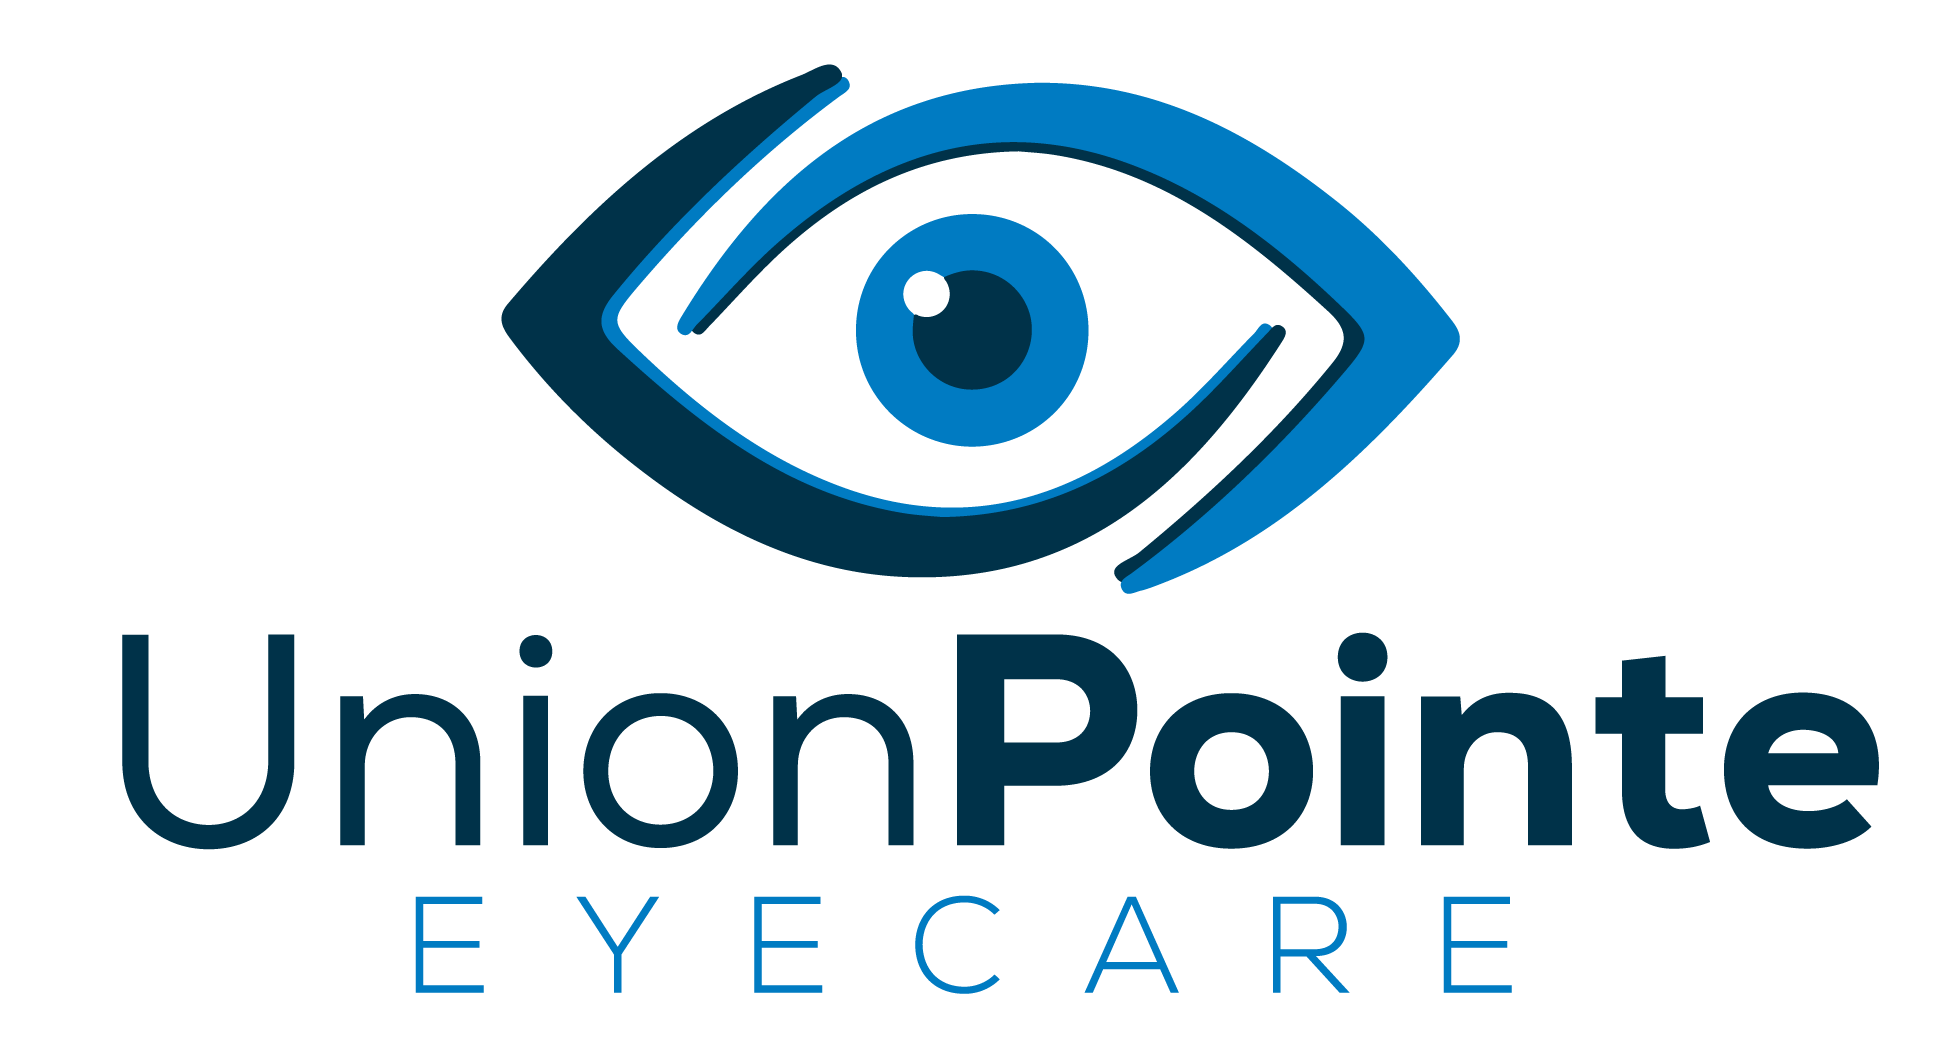 Union Pointe Eyecare